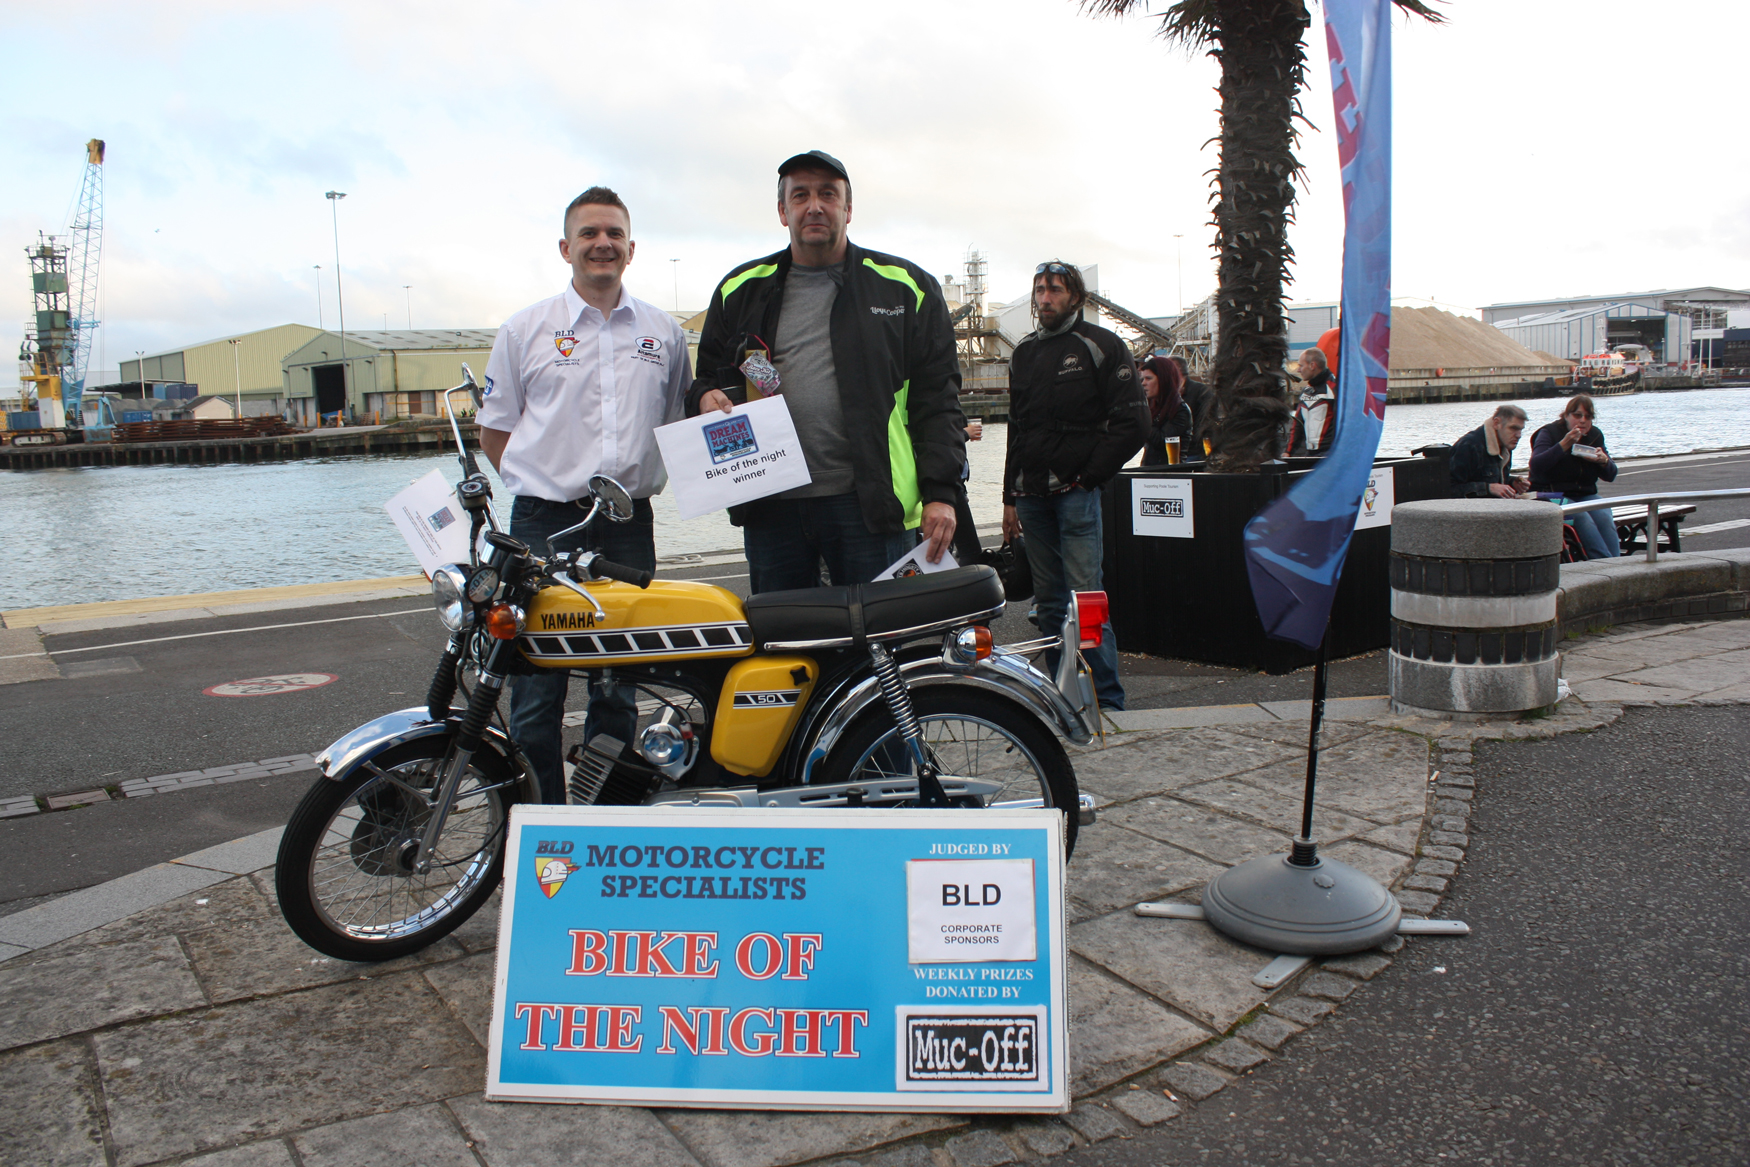 More than 700 motorbikes gather at Poole Quay for latest bike night